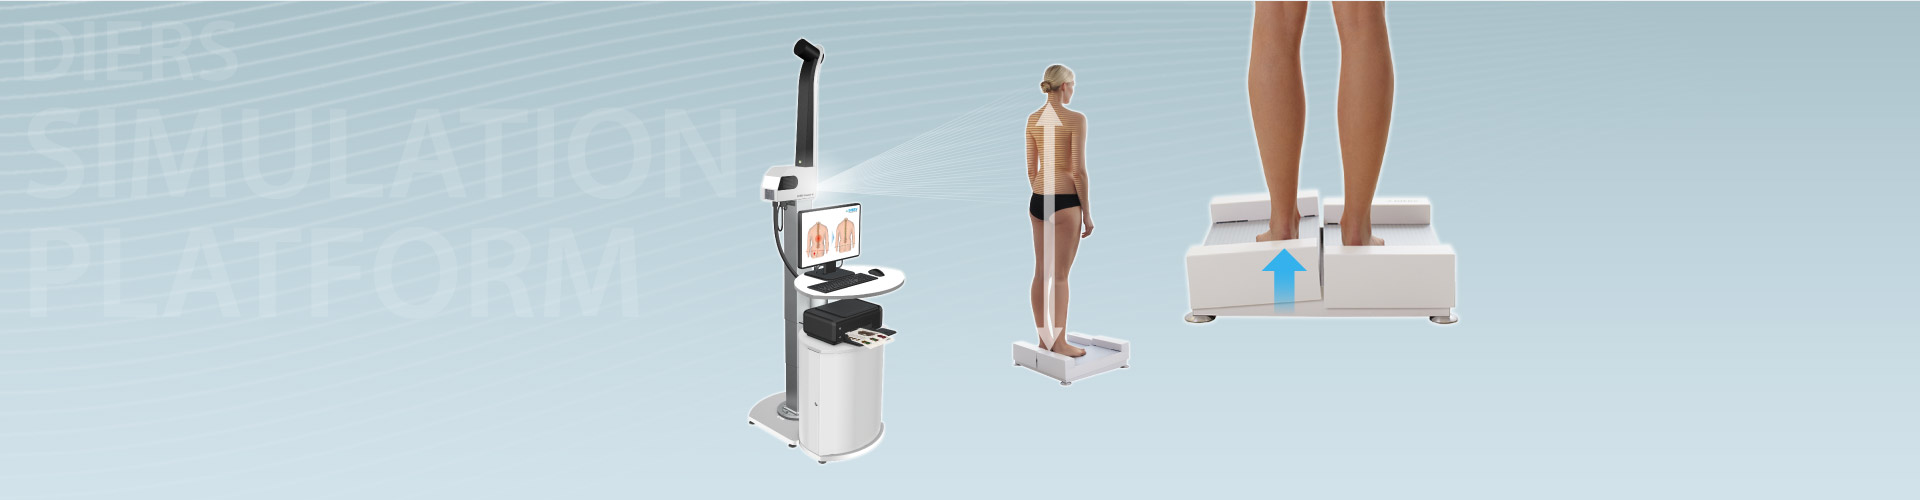 DIERS simulation platform: Evaluation of Leg Length Differences